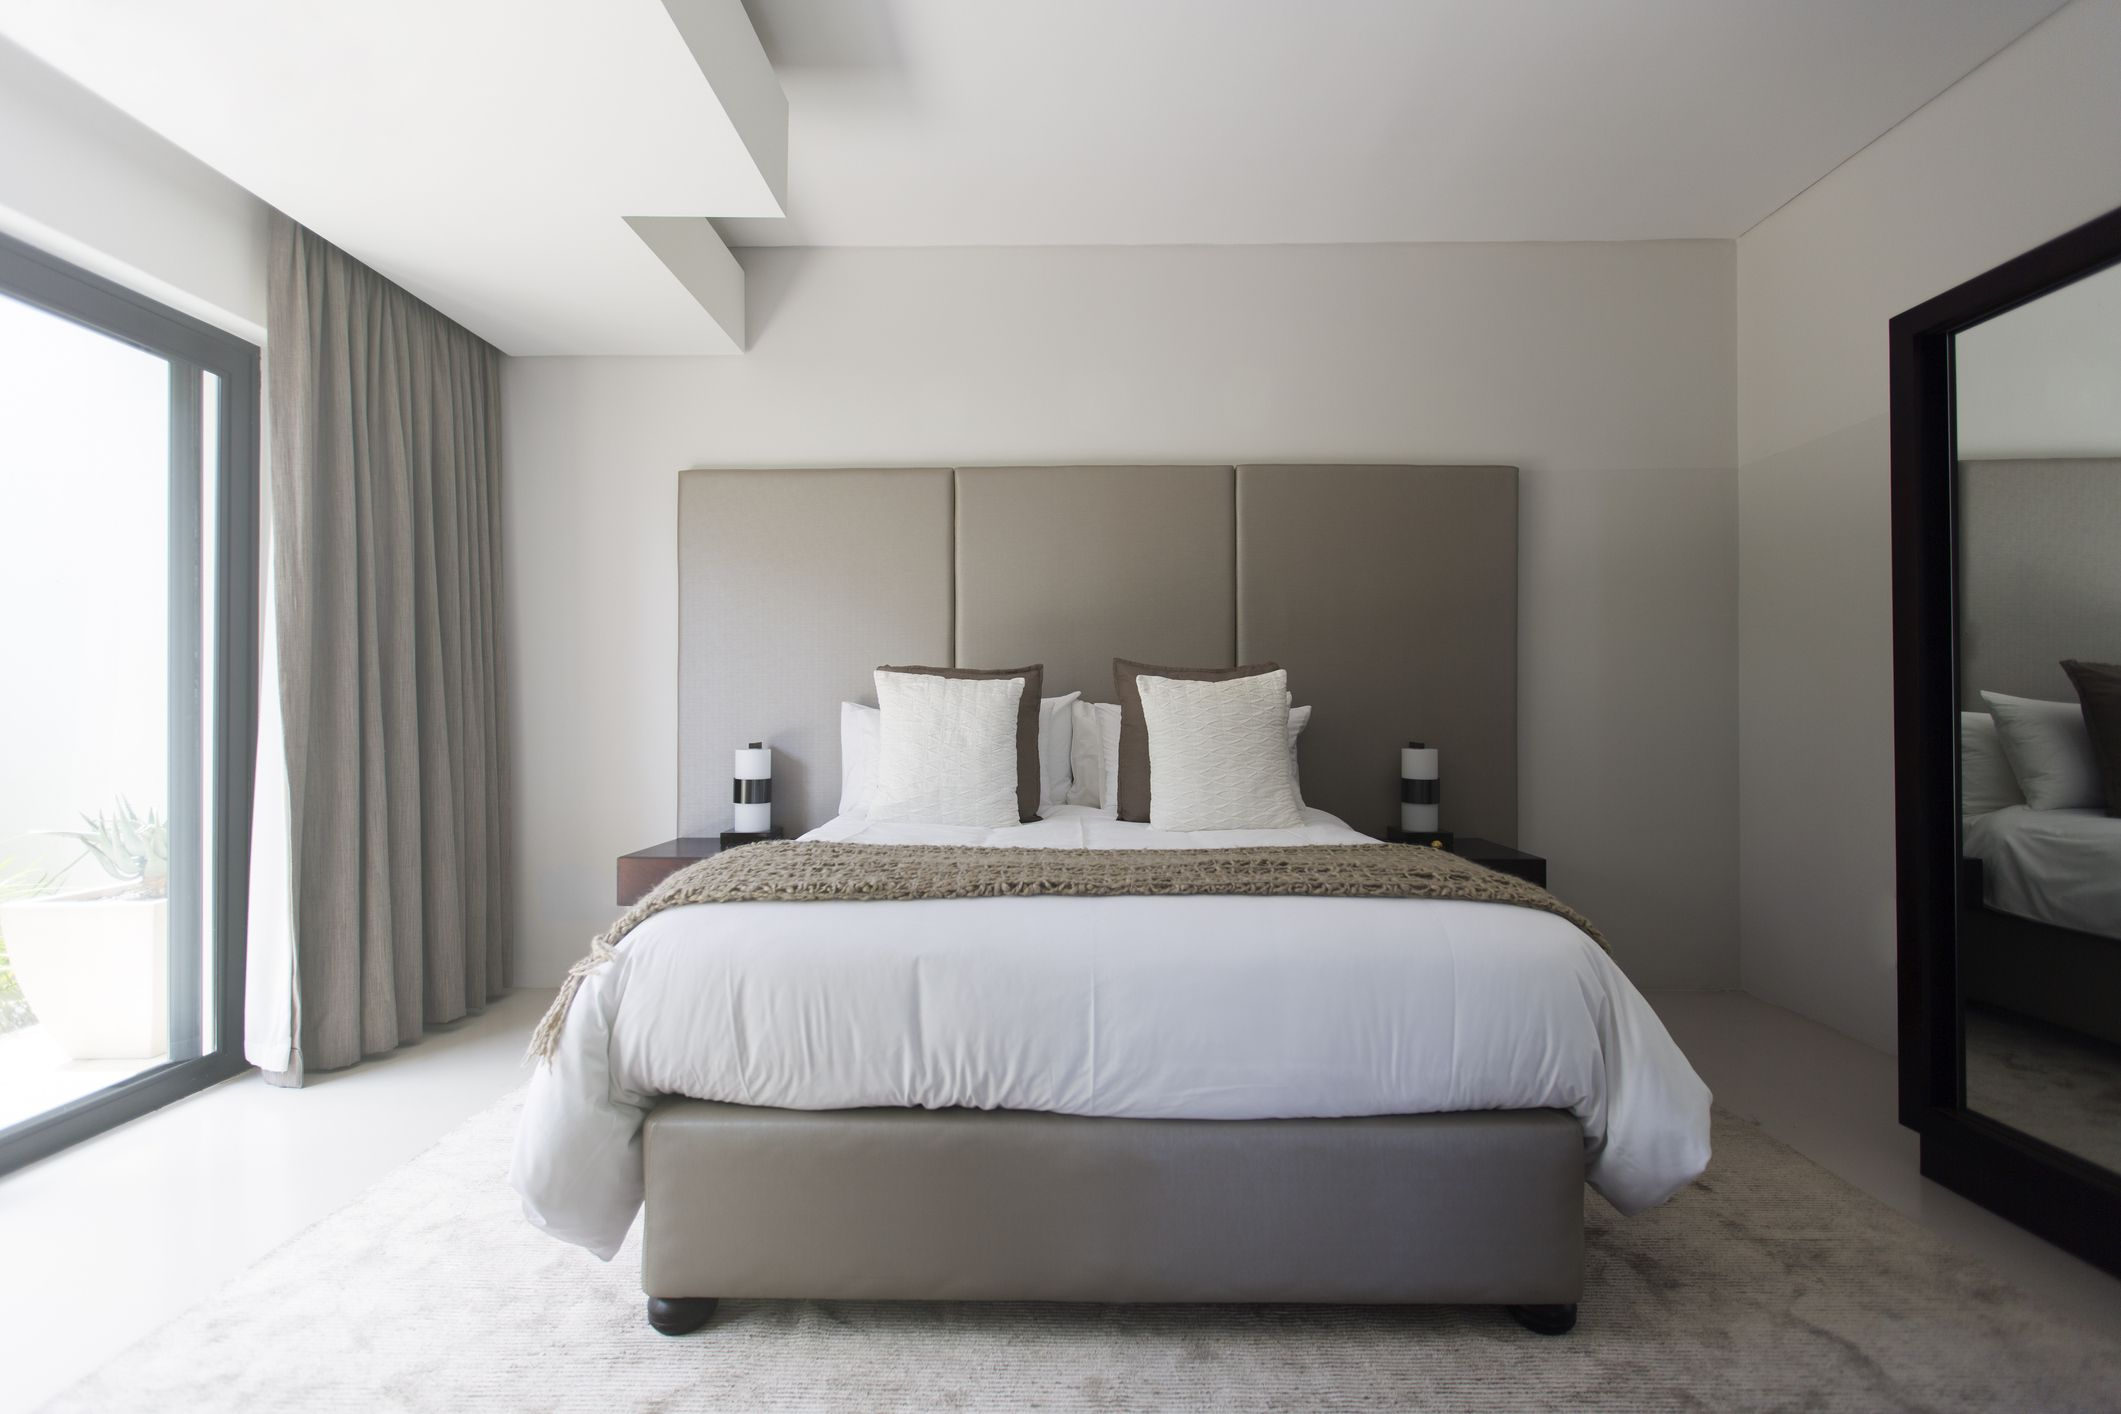 Modern white and beige bedroom with double bed